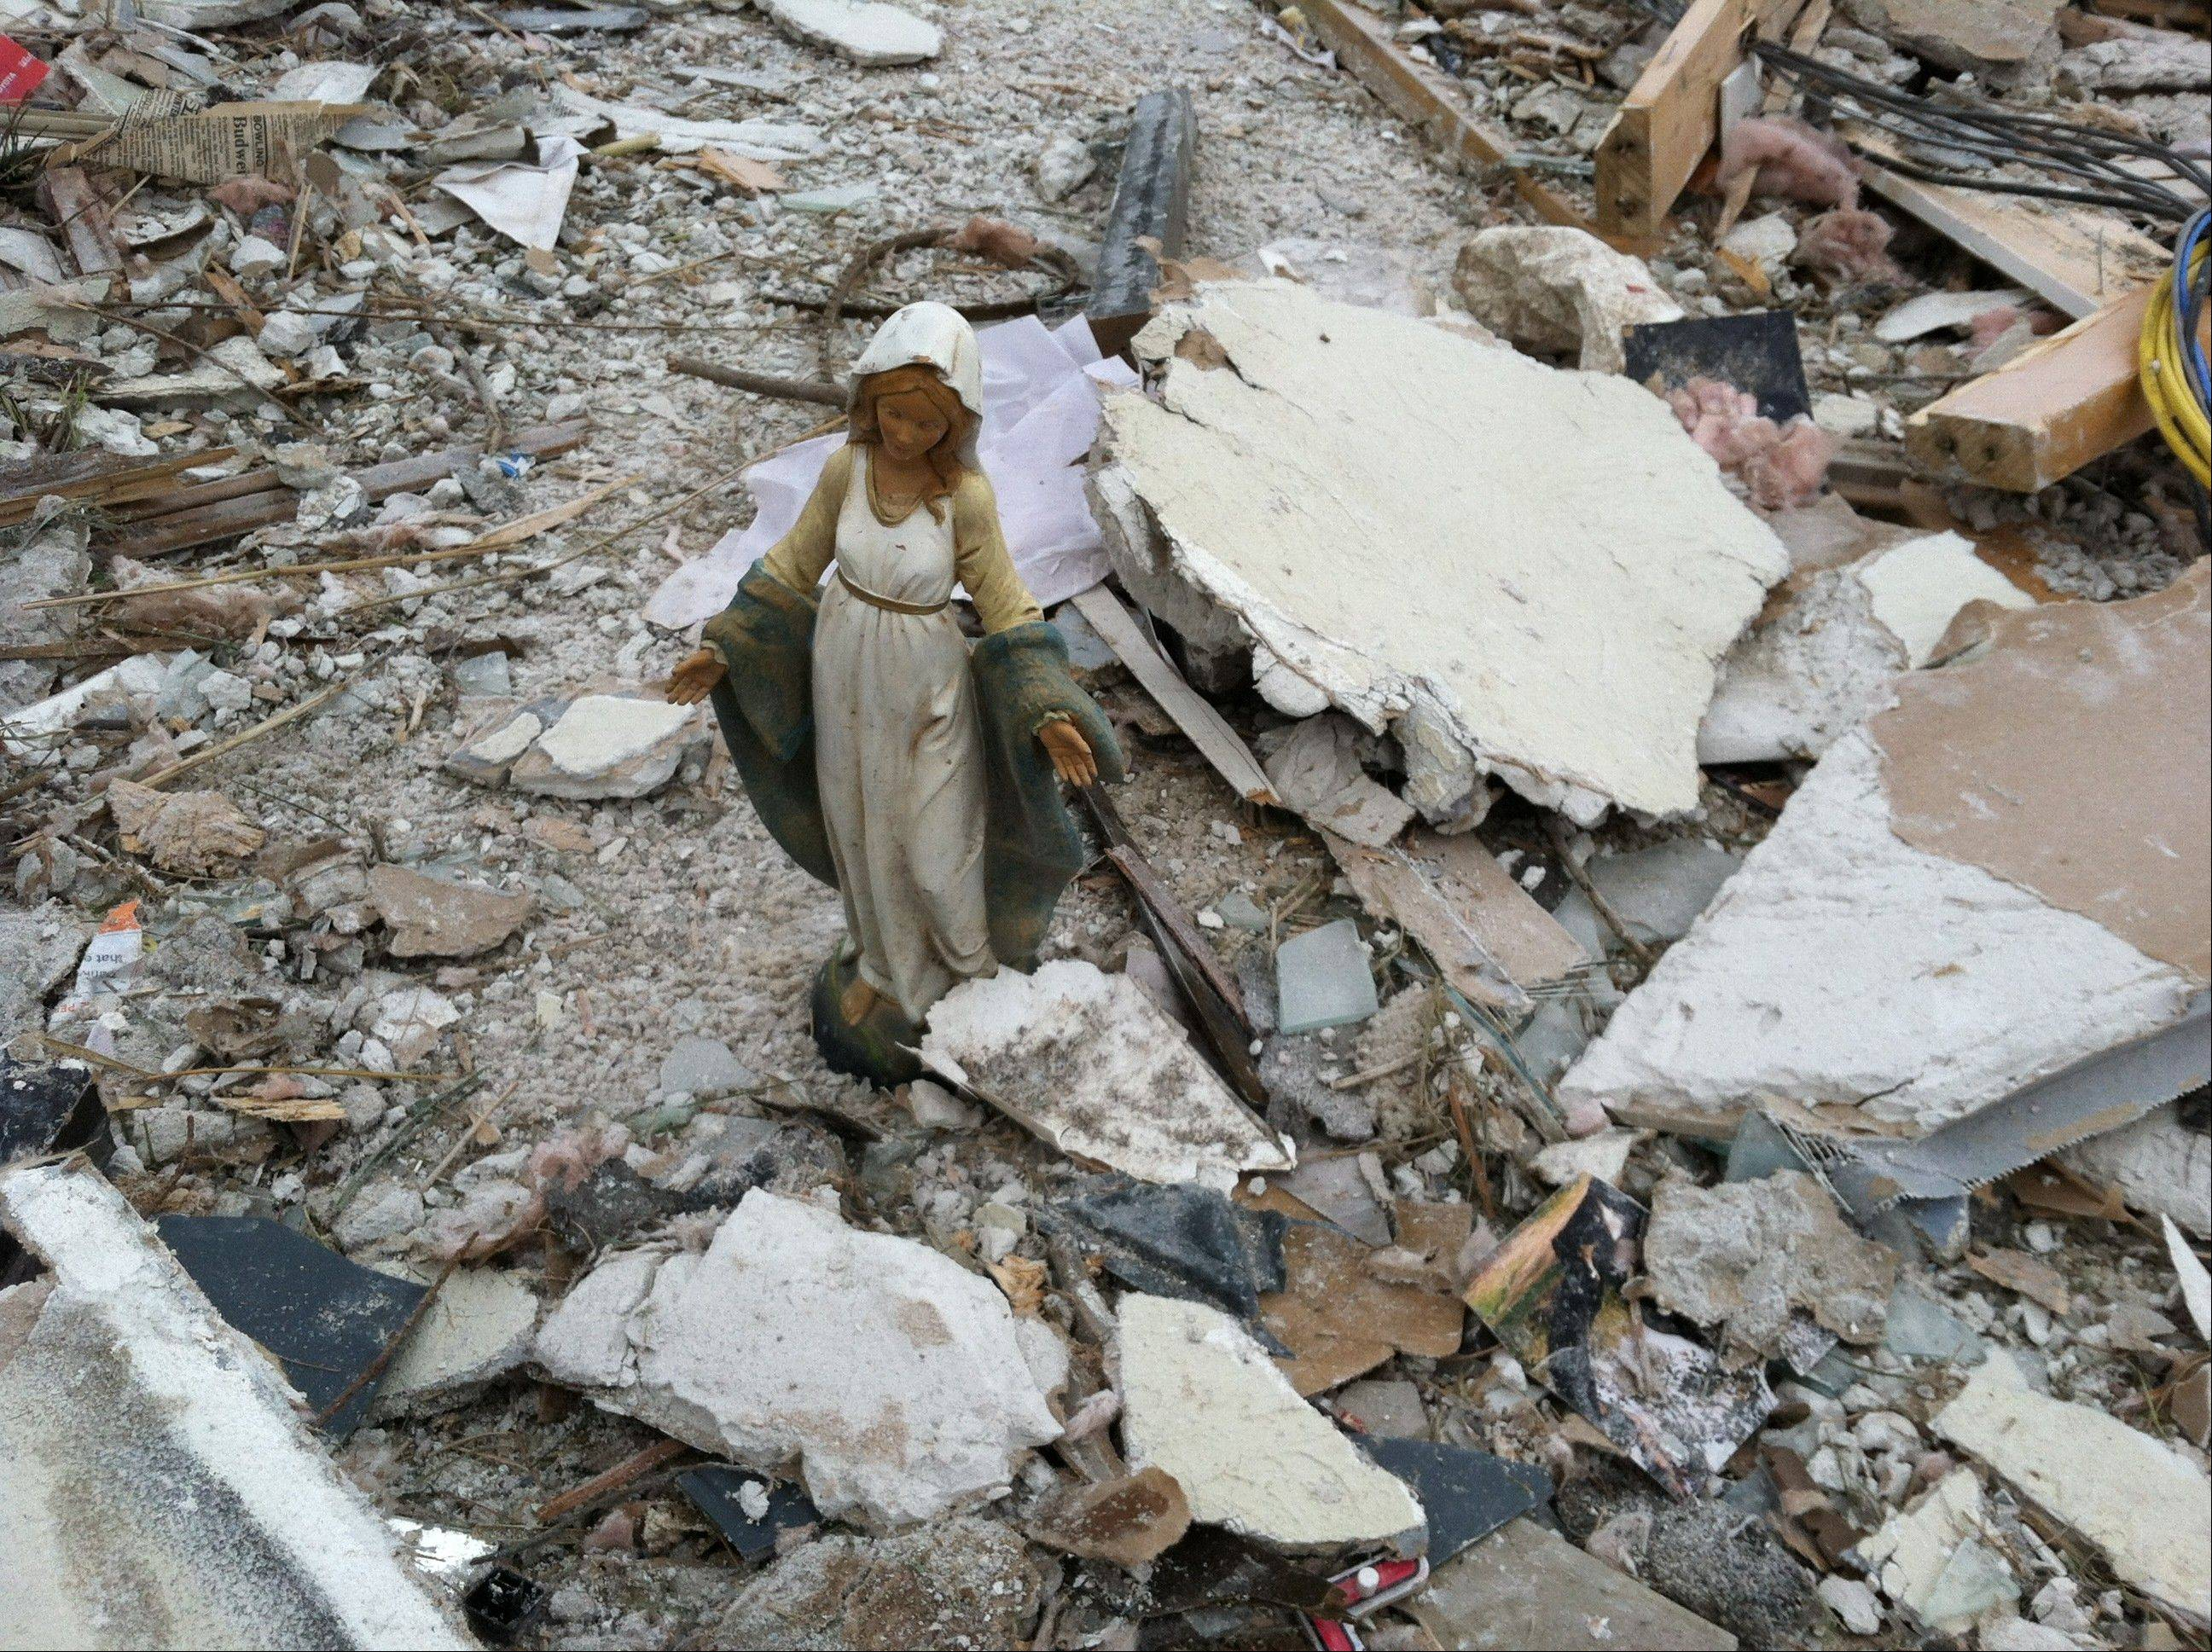 In a November 2013 family photo provided by Annmarie Klein, a statue of the Blessed Virgin Mary stands amid the ruins of the former home of Klein and her family in Washington, Ill., after the Nov. 17, 2013 that destroyed their home. Klein is asking for the publicís help in locating three cards swept away by the twister. The cards were addressed to the three children of Kleinís brother, Paul McLaughlin, who before his 2005 death from colon cancer entrusted Klein to give the cards to his children someday.